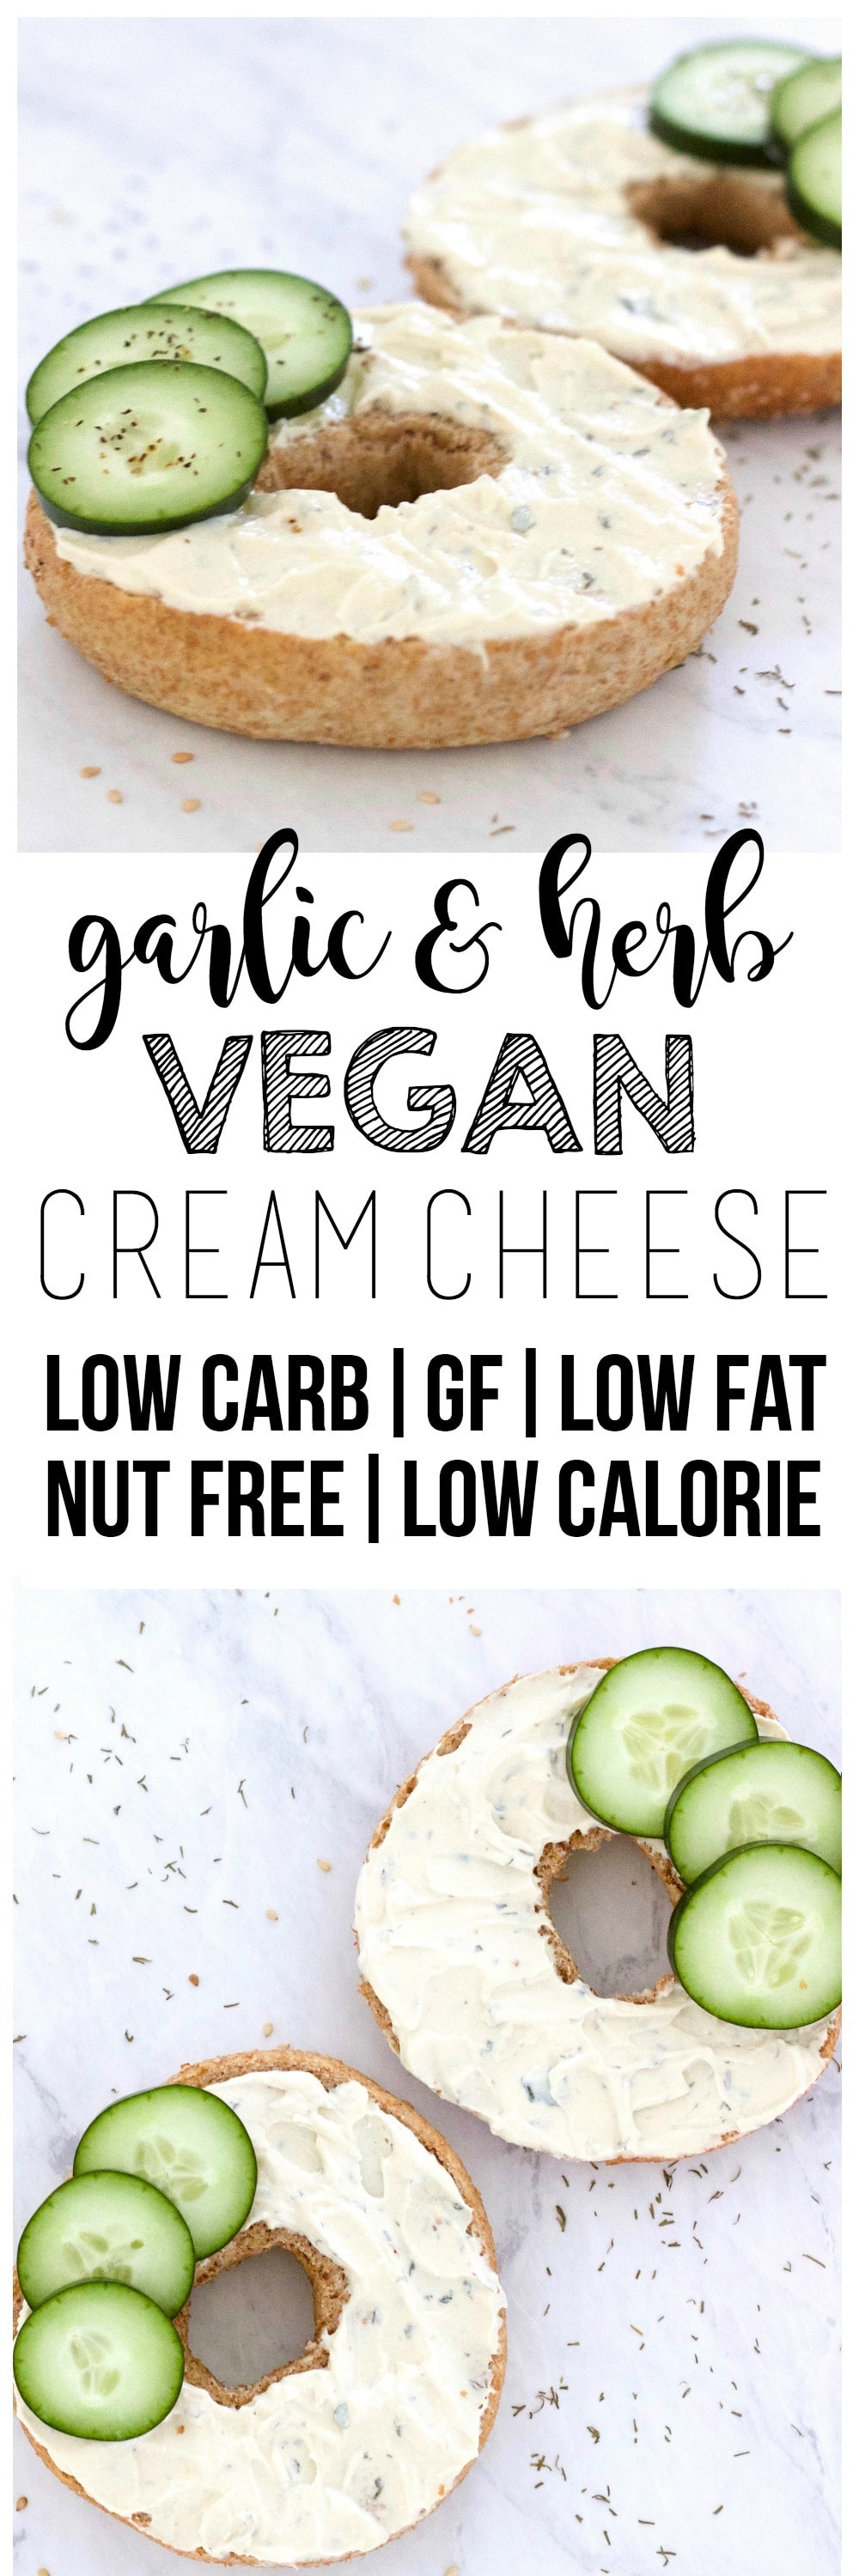 This Garlic & Herb Vegan Cream Cheese is amazing! Made with tofu & perfectly creamy and spreadable. It's also keto, gluten-free, nut-free, oil-free, low-fat, low-carb, low-calorie, and dairy-free.